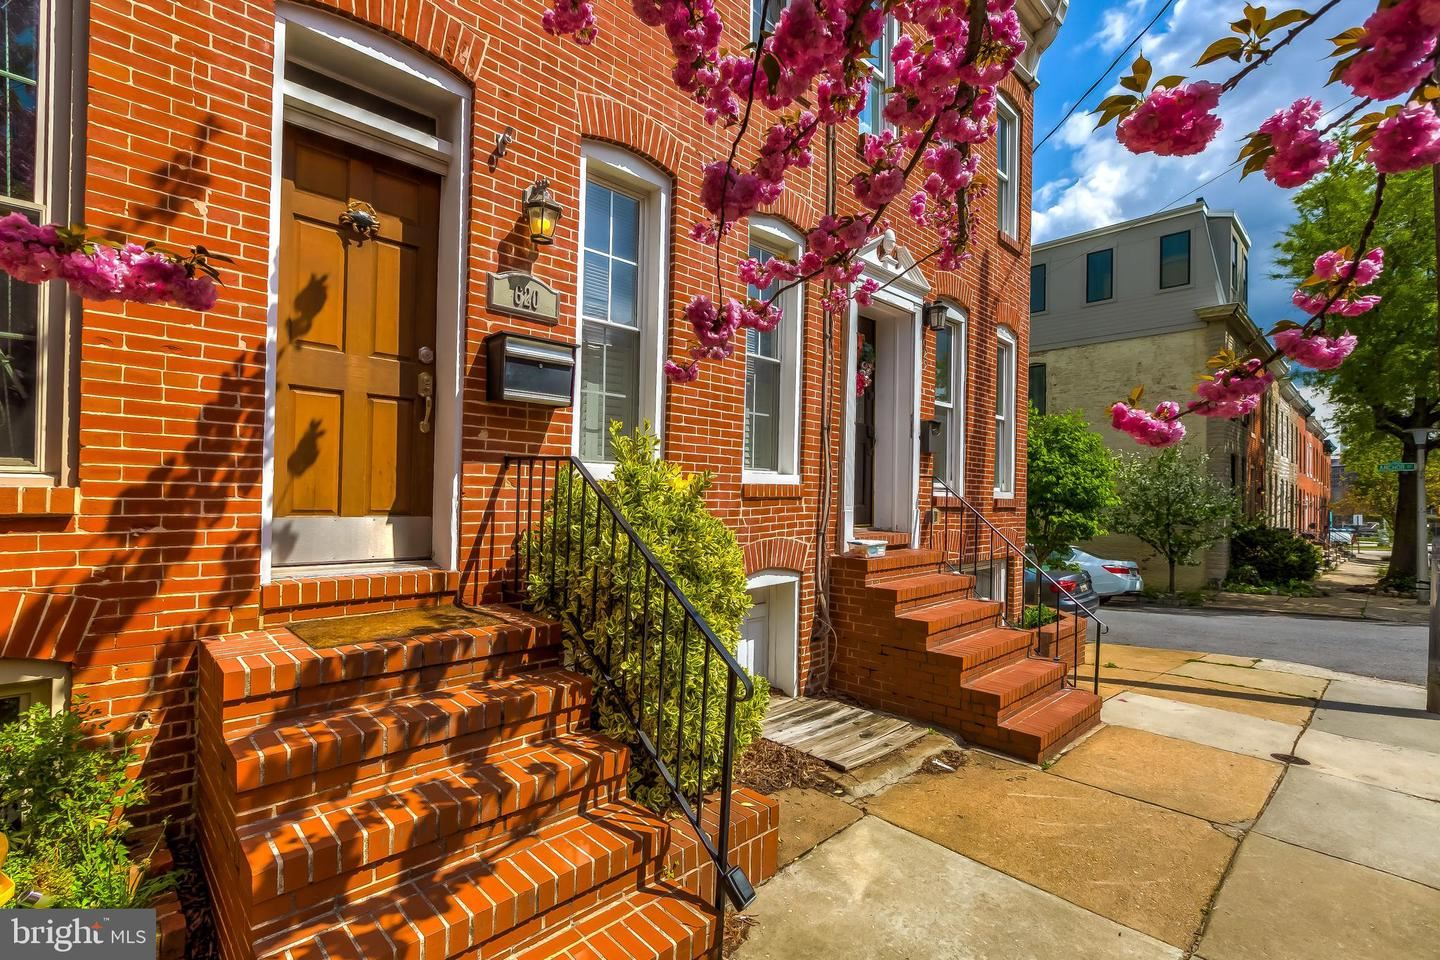 620 E CLEMENT ST, Baltimore, MD 21230 - MLS#: MDBA547484